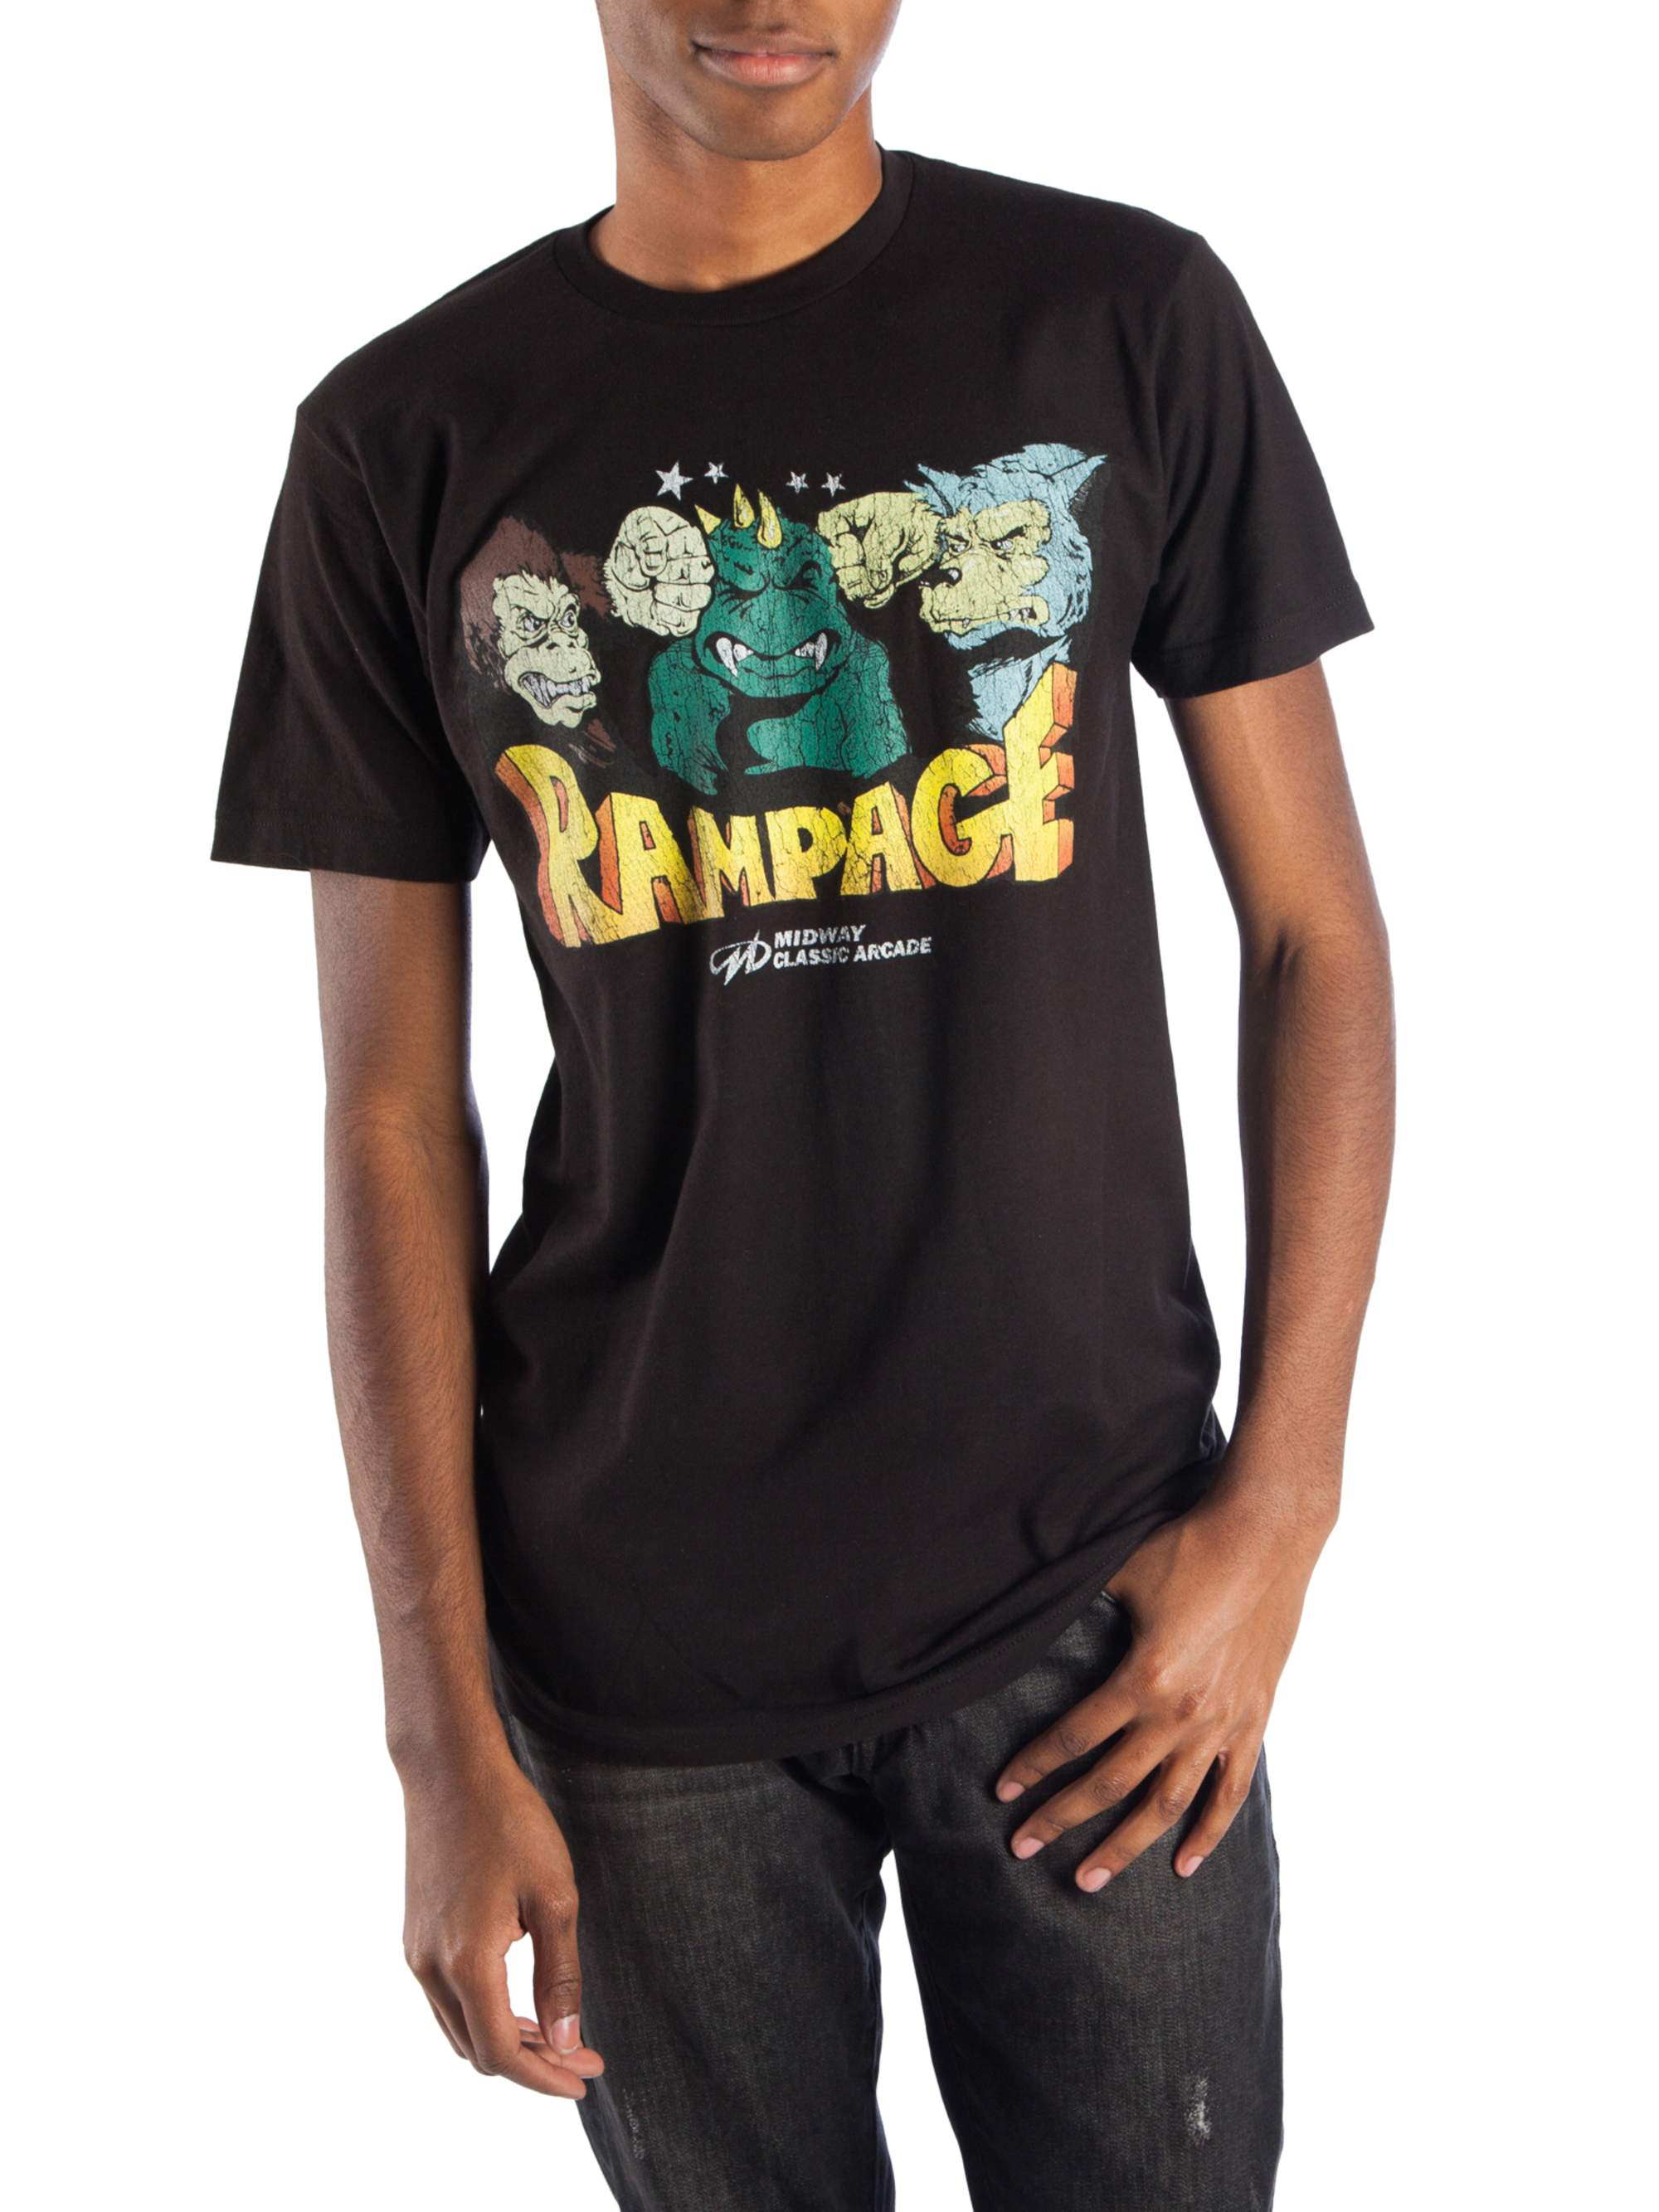 Midway Games Rampage Characters Men's Short Sleeve Graphic T-shirt